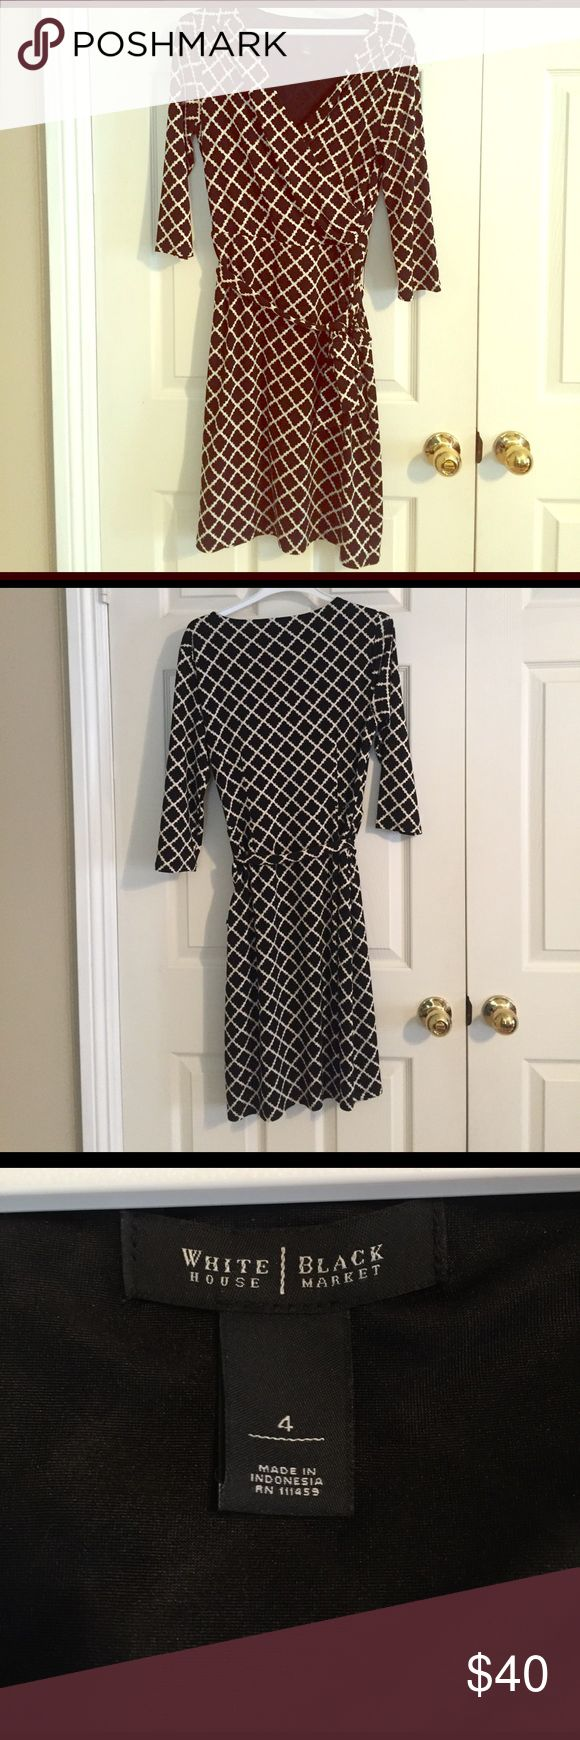 White House Black Market faux wrap dress This dress is very flattering as all wrap dresses are. It can be worn for so many events! It has 3/4 sleeves and hits to about the knee. White House Black Market Dresses